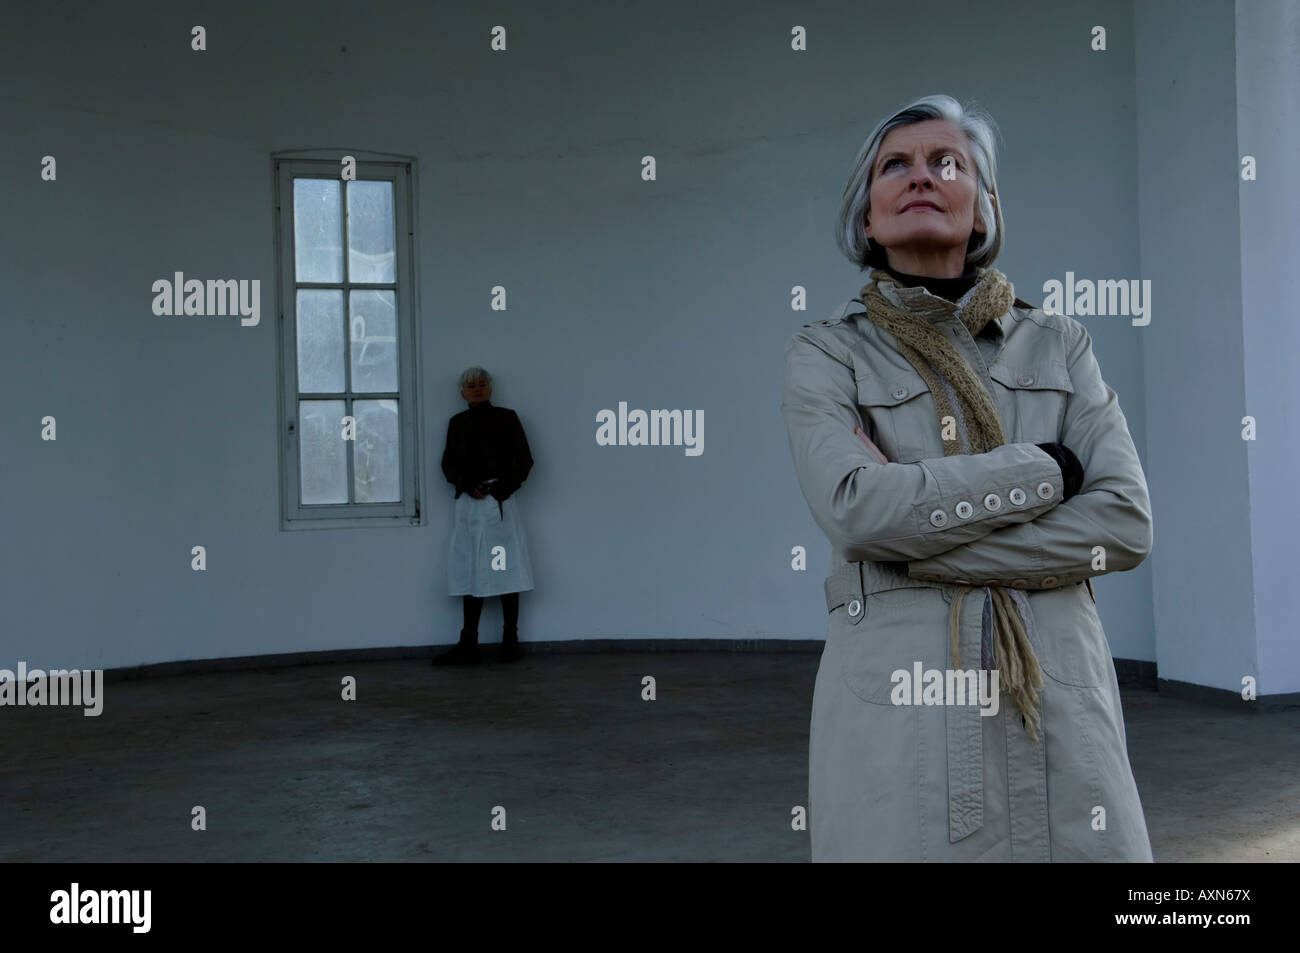 Two mature women standing in an empty room - Stock Image